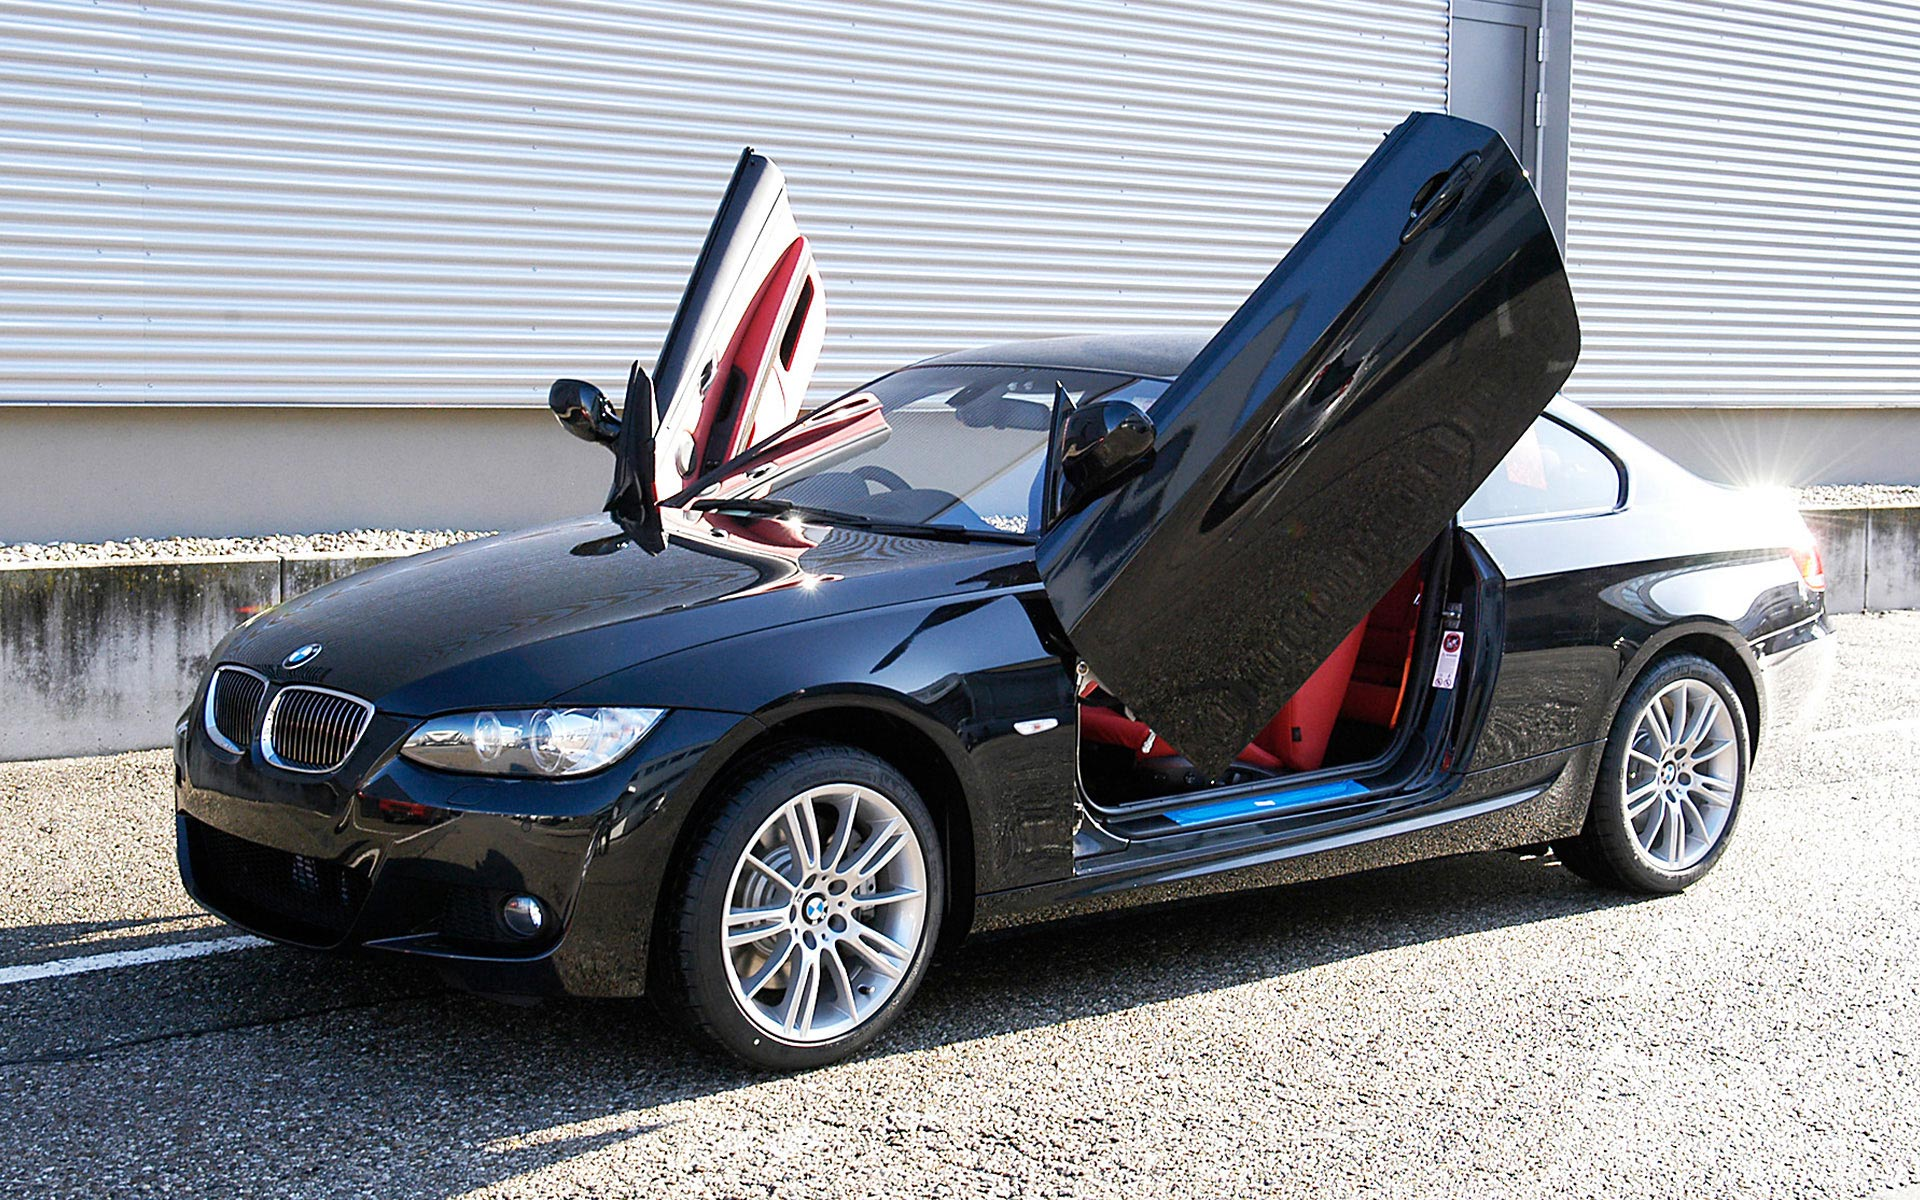 A customised BMW 335i with M Sport Package and gull wing doors